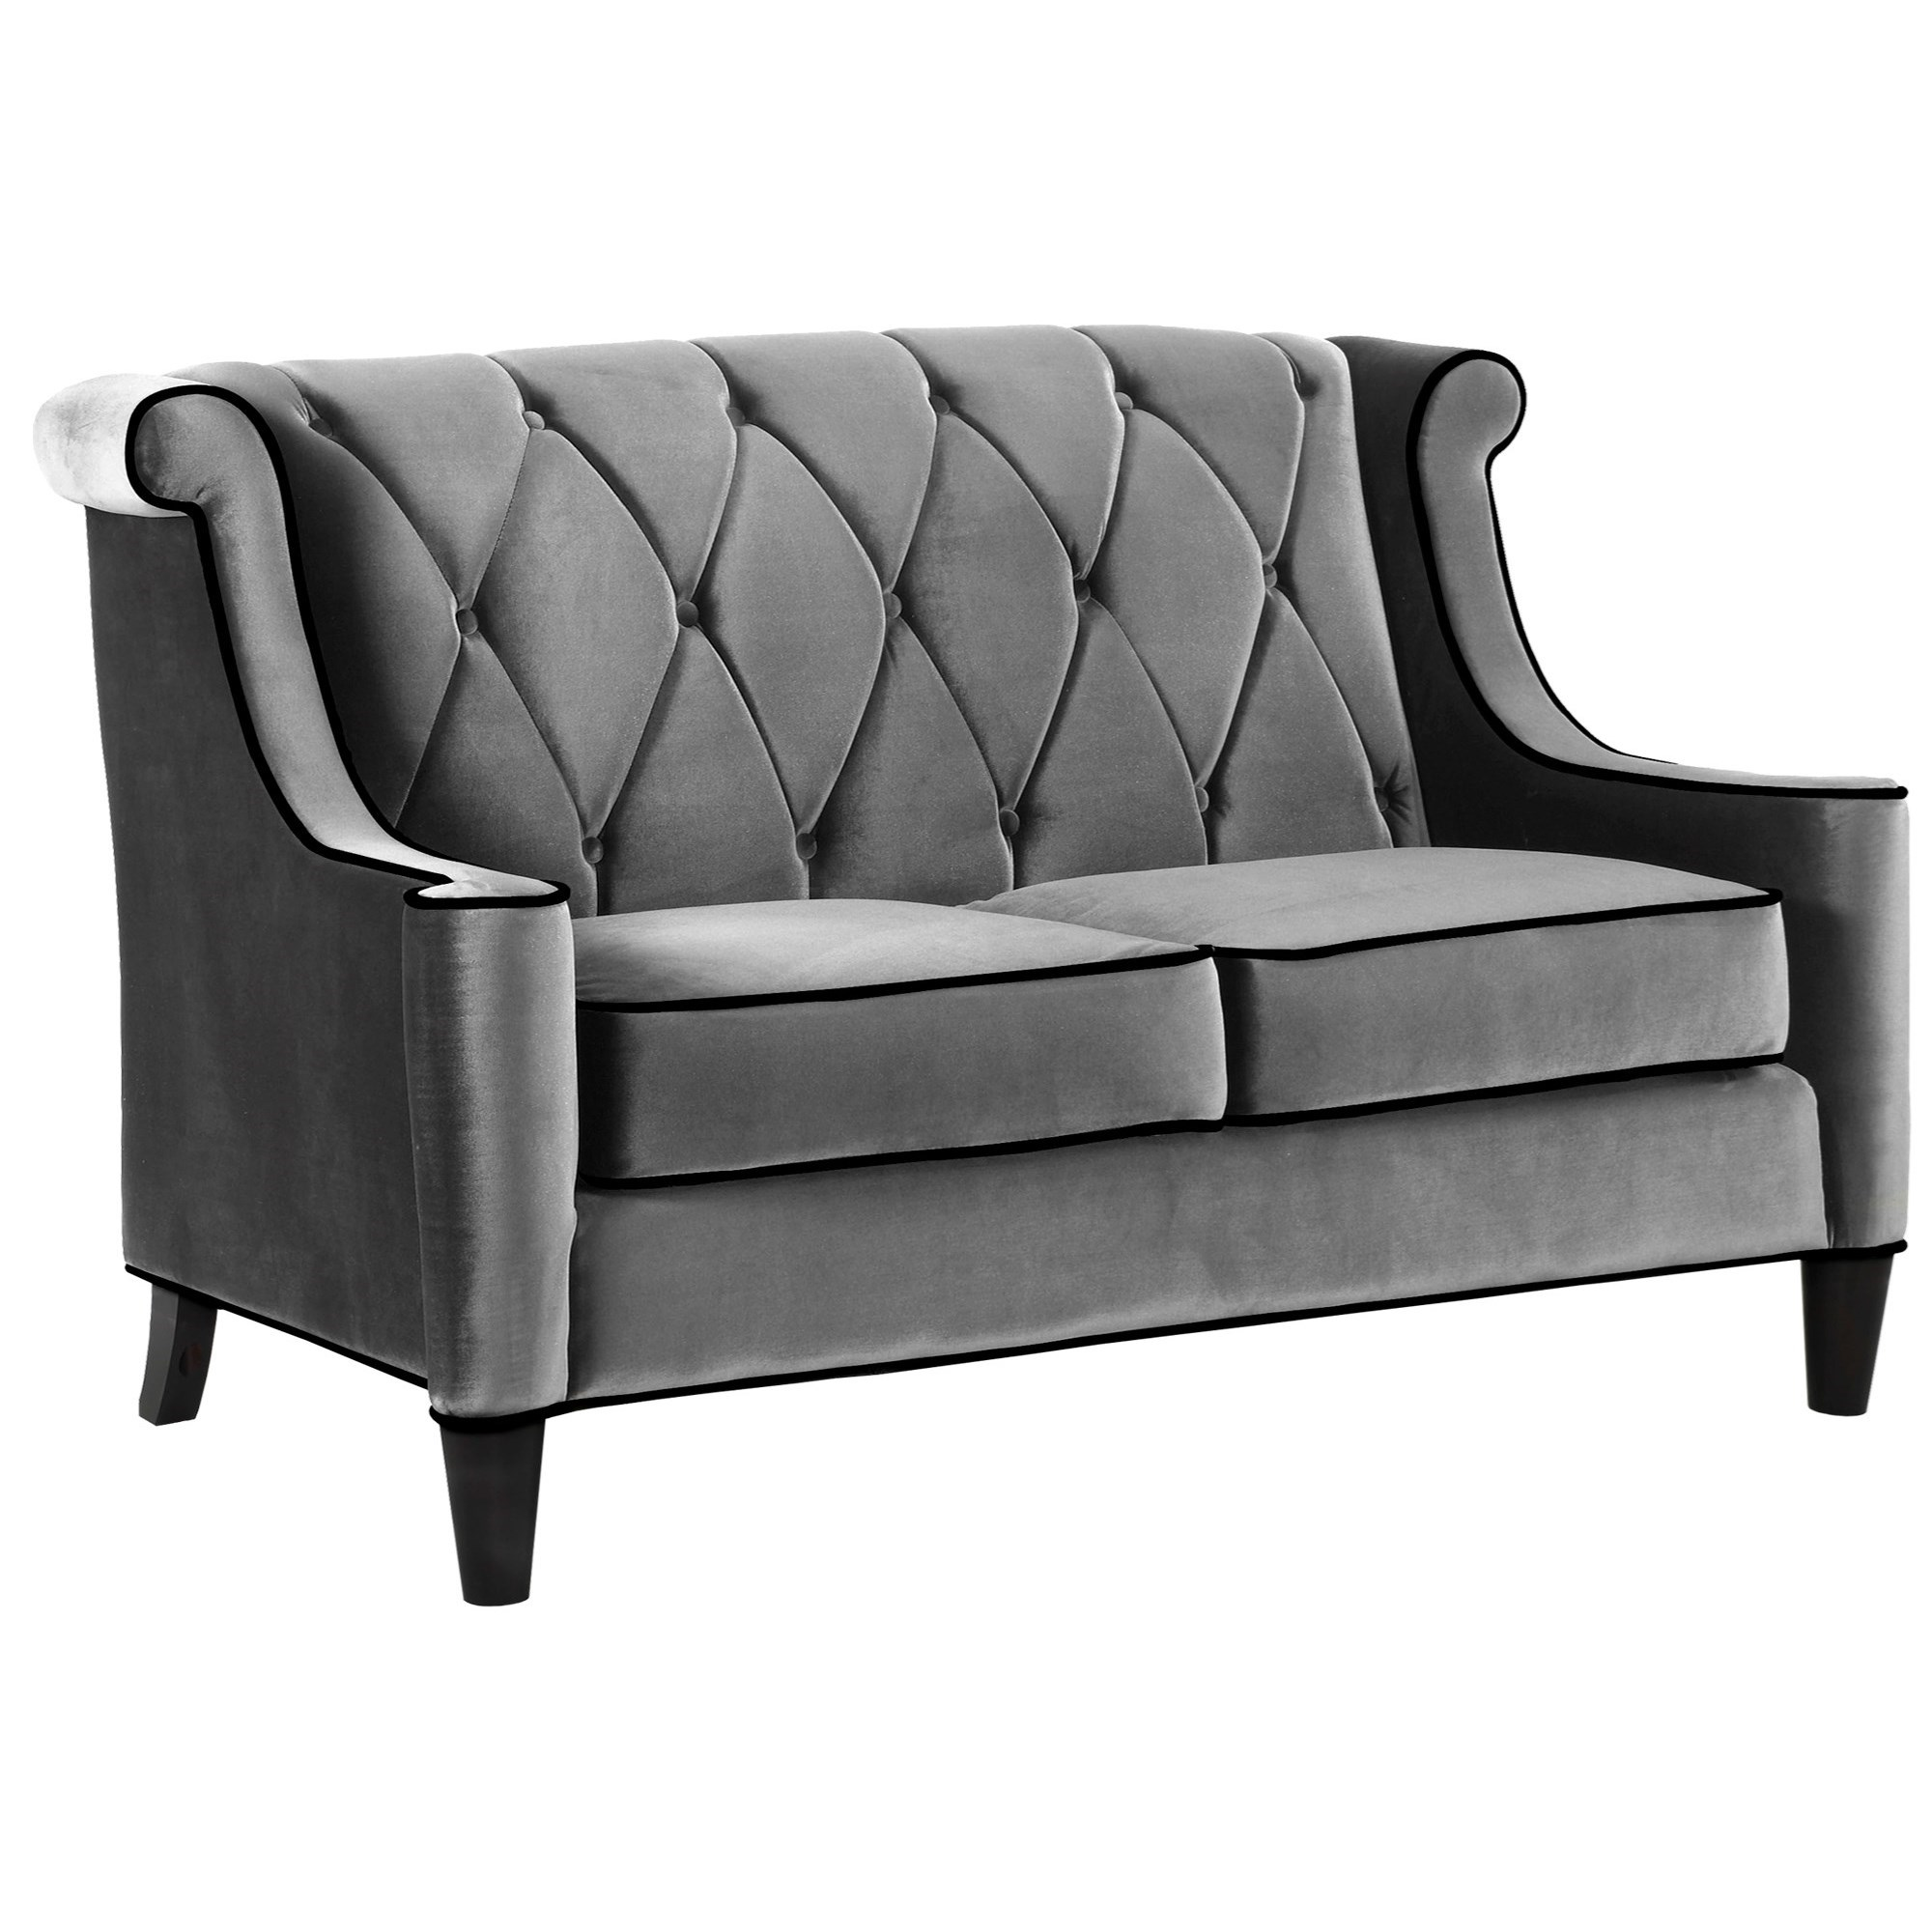 Barrister Loveseat by Armen Living at Michael Alan Furniture & Design